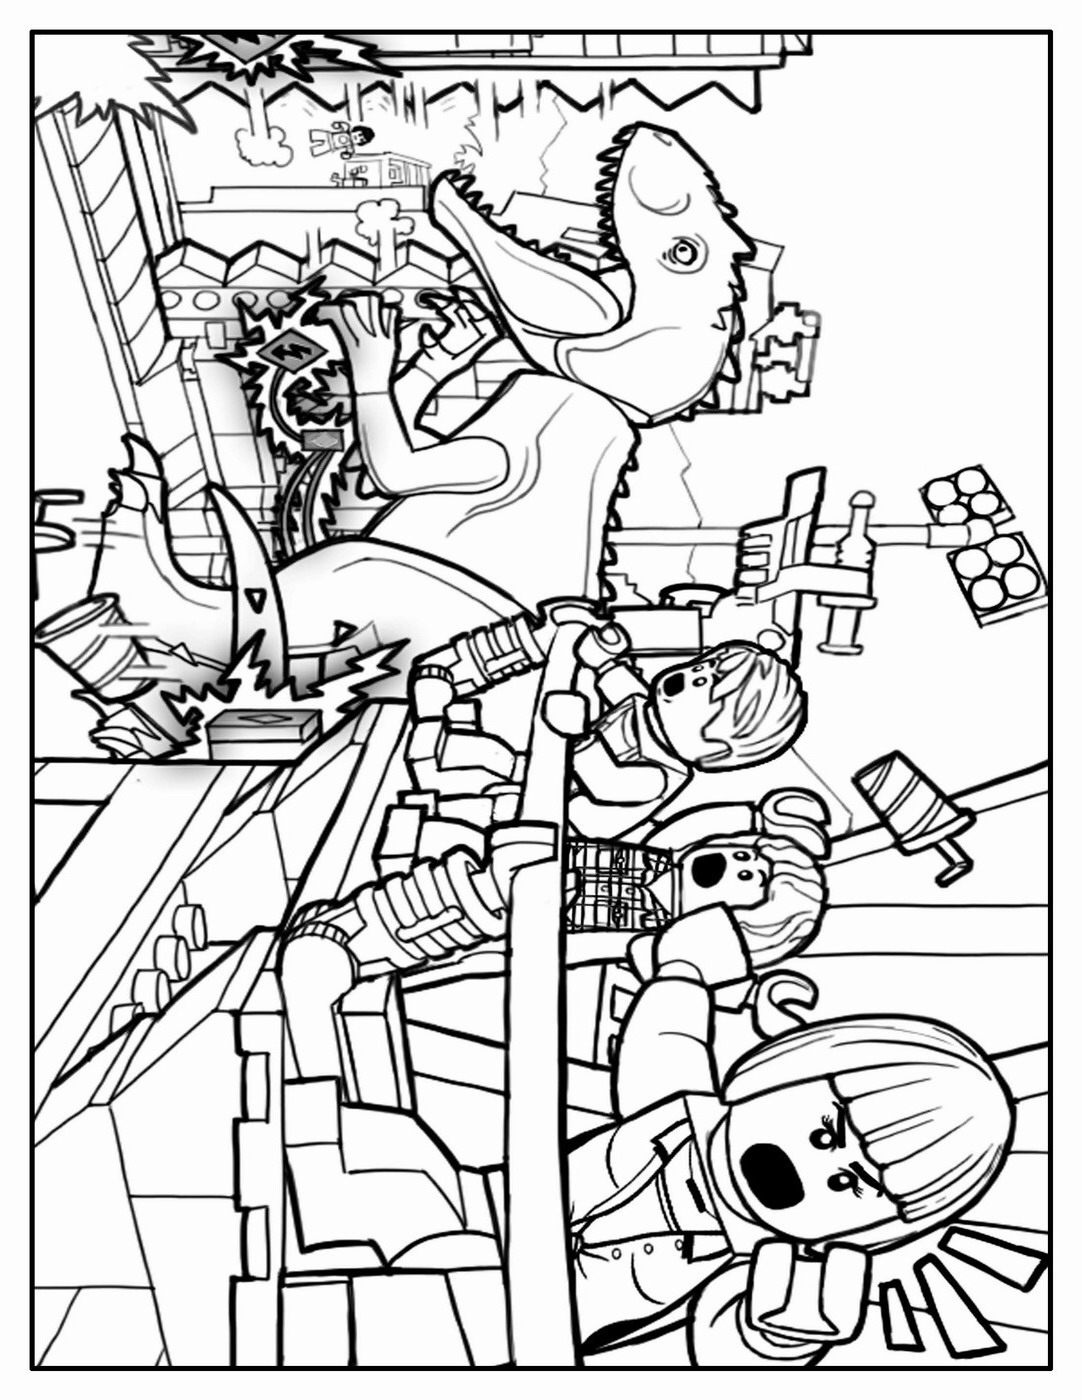 jurassic world printable coloring pages jurassic world fallen kingdom coloring pages how to draw jurassic coloring printable world pages